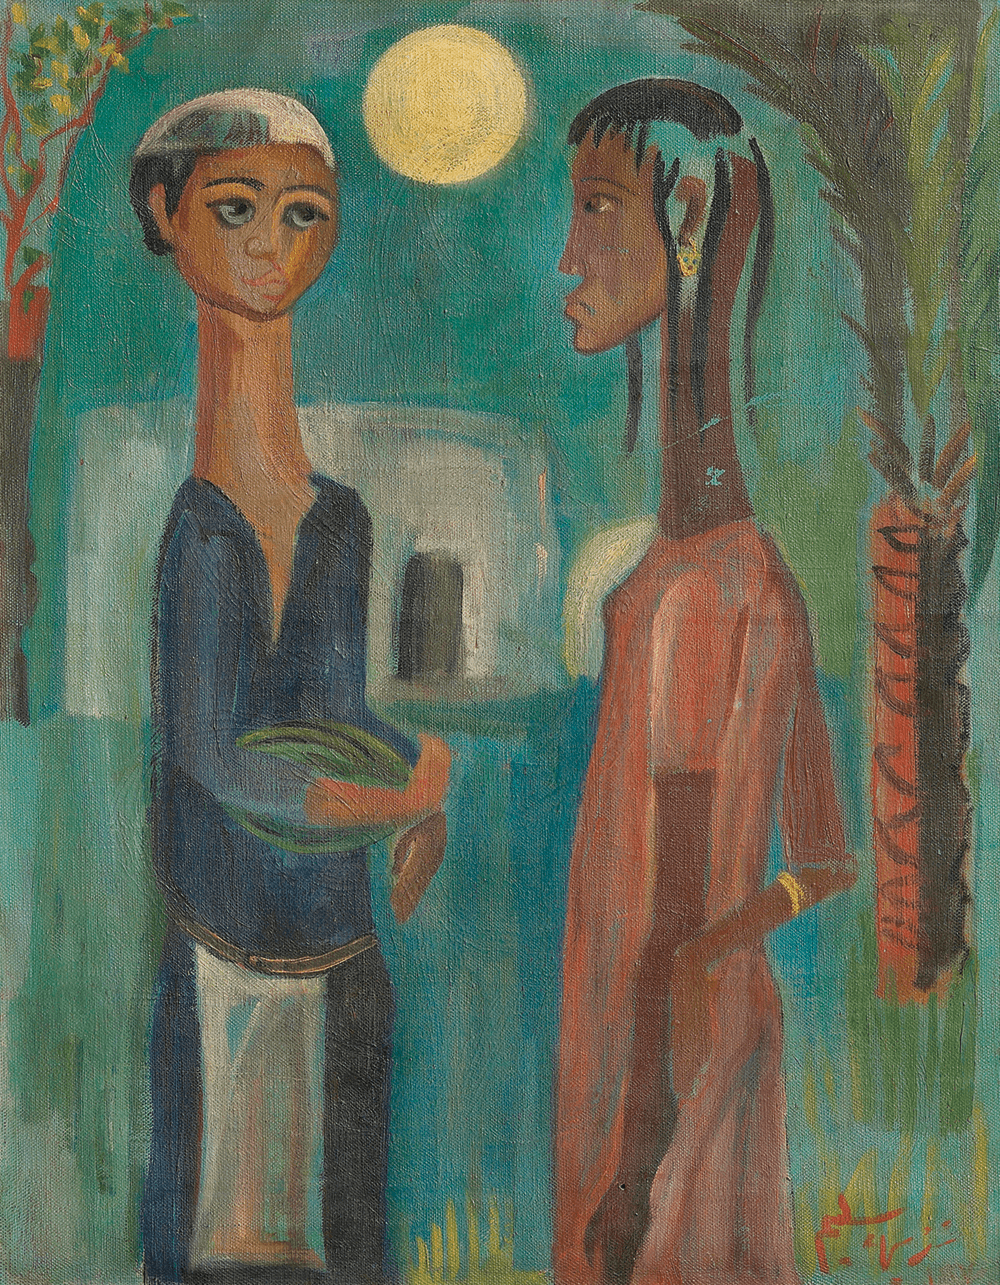 Nazhi Selim, Lovers in the Moonlight, 1947. Olio su tela, 42 x 54cm. Per gentile concessione di Alia e Hussain Harba Collection, Iraq, Italia. Fotografo: Edoardo Garis.